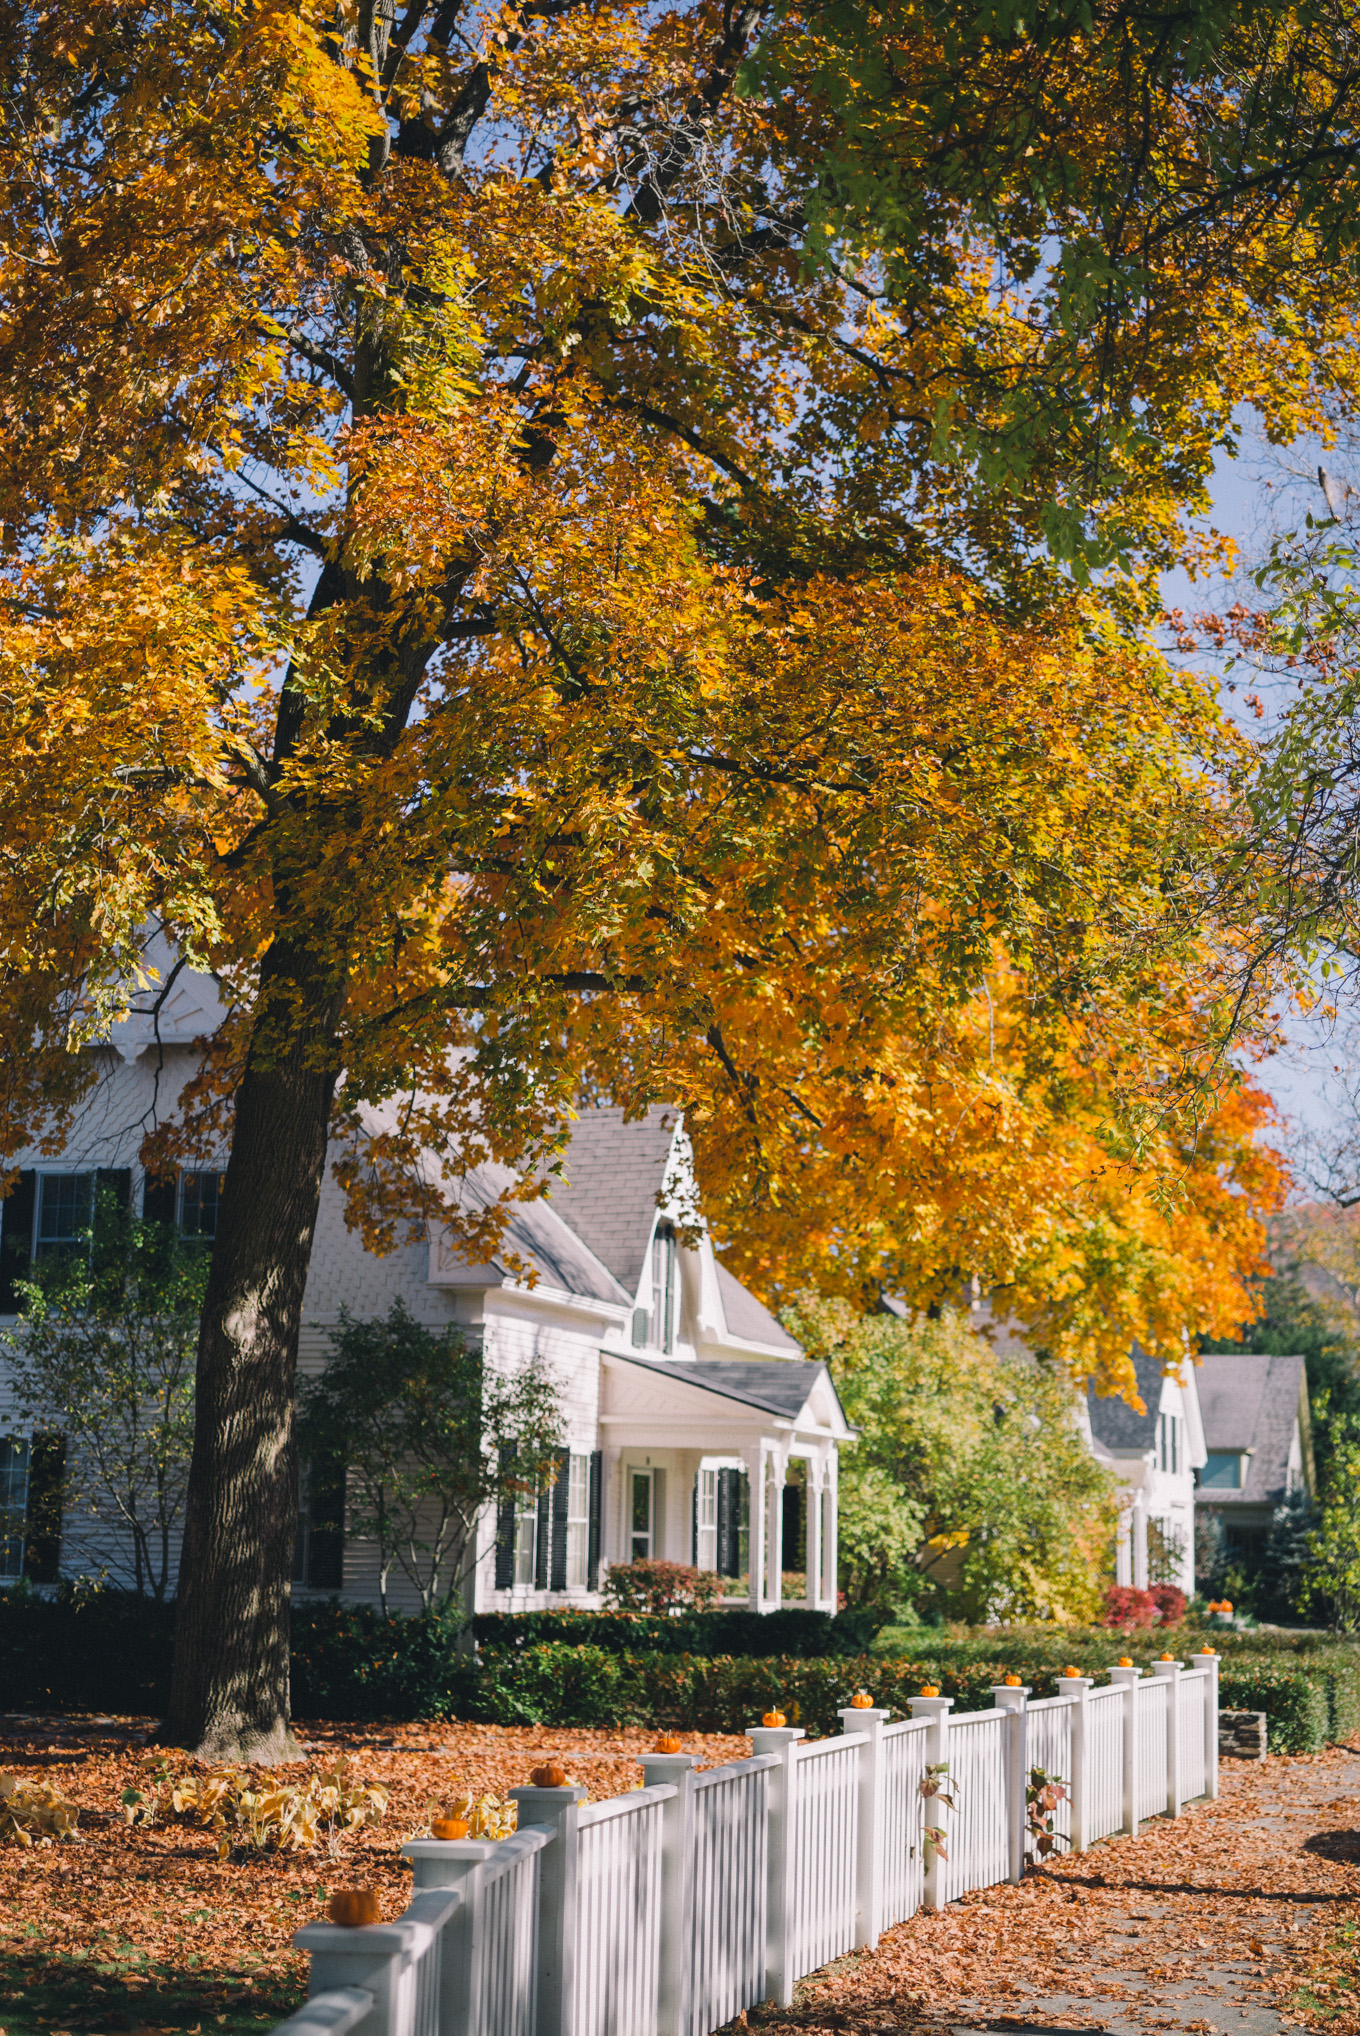 gmg-woodstock-vermont-fall-1000317